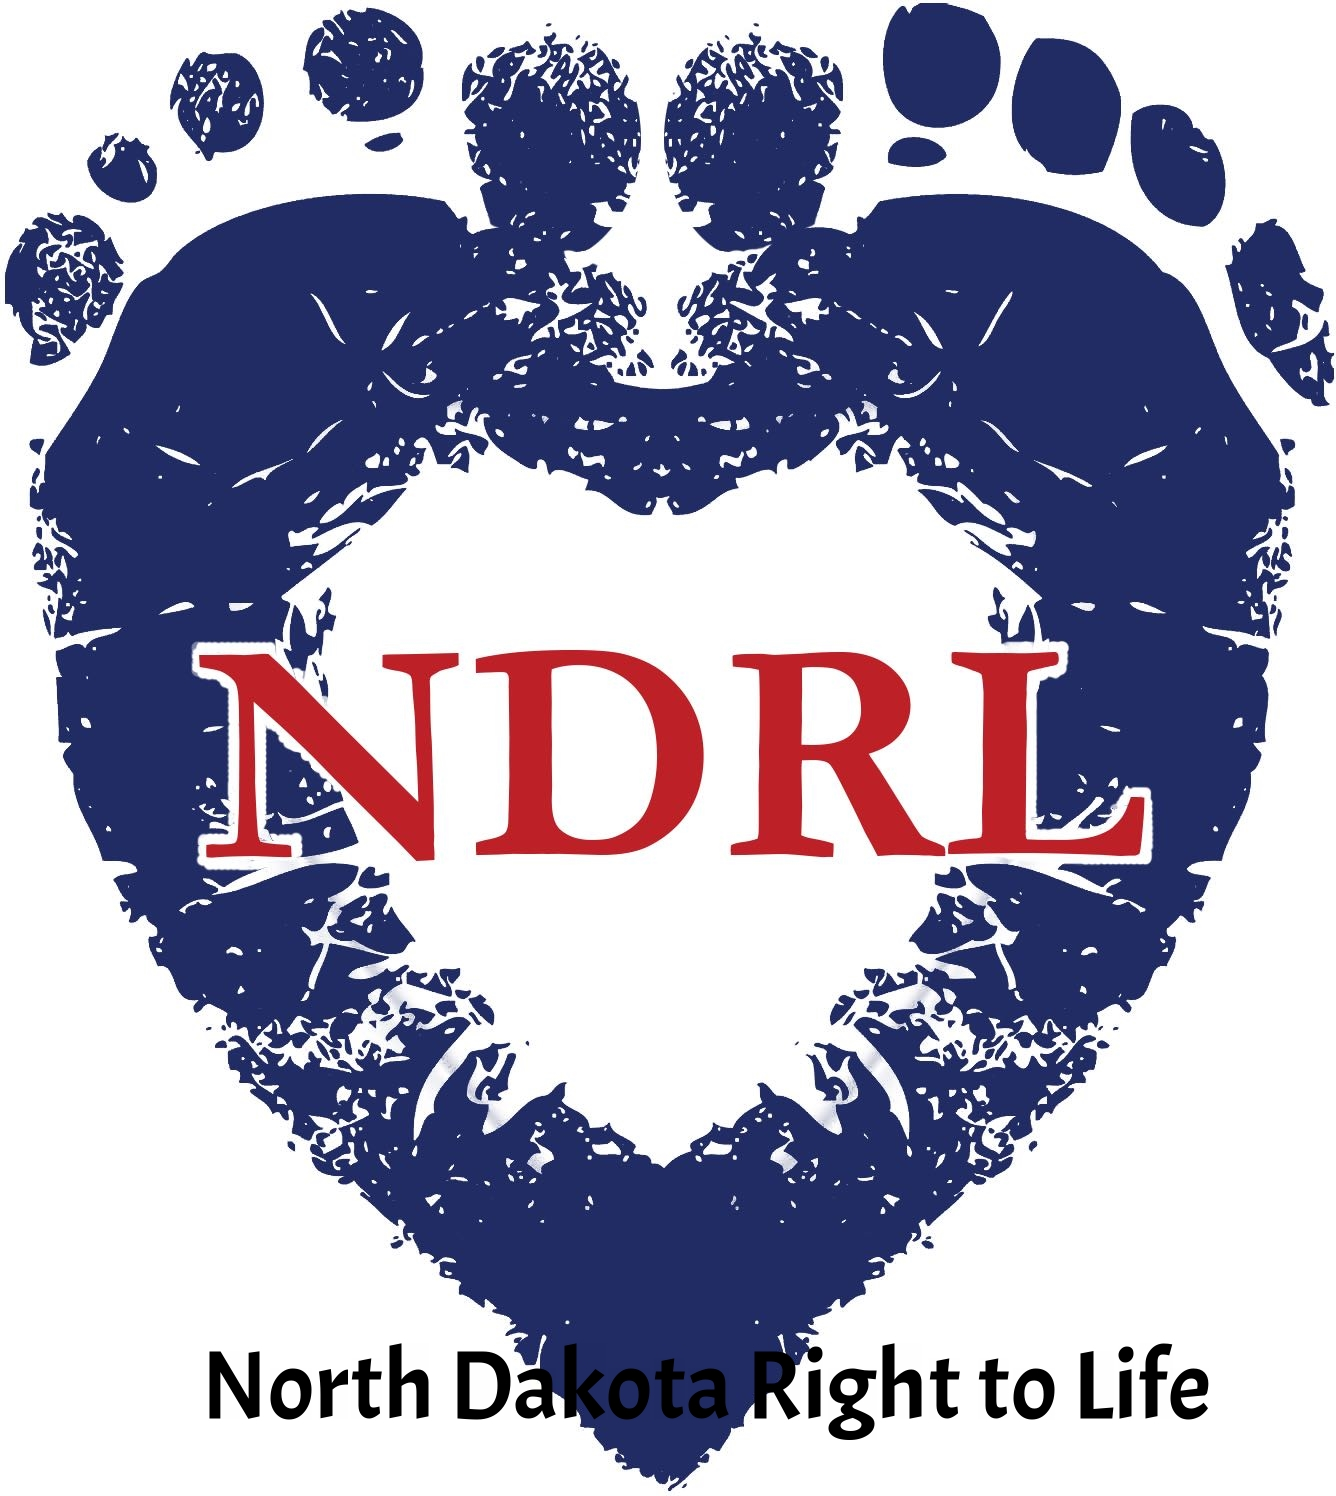 NORTH DAKOTA RIGHT TO LIFE